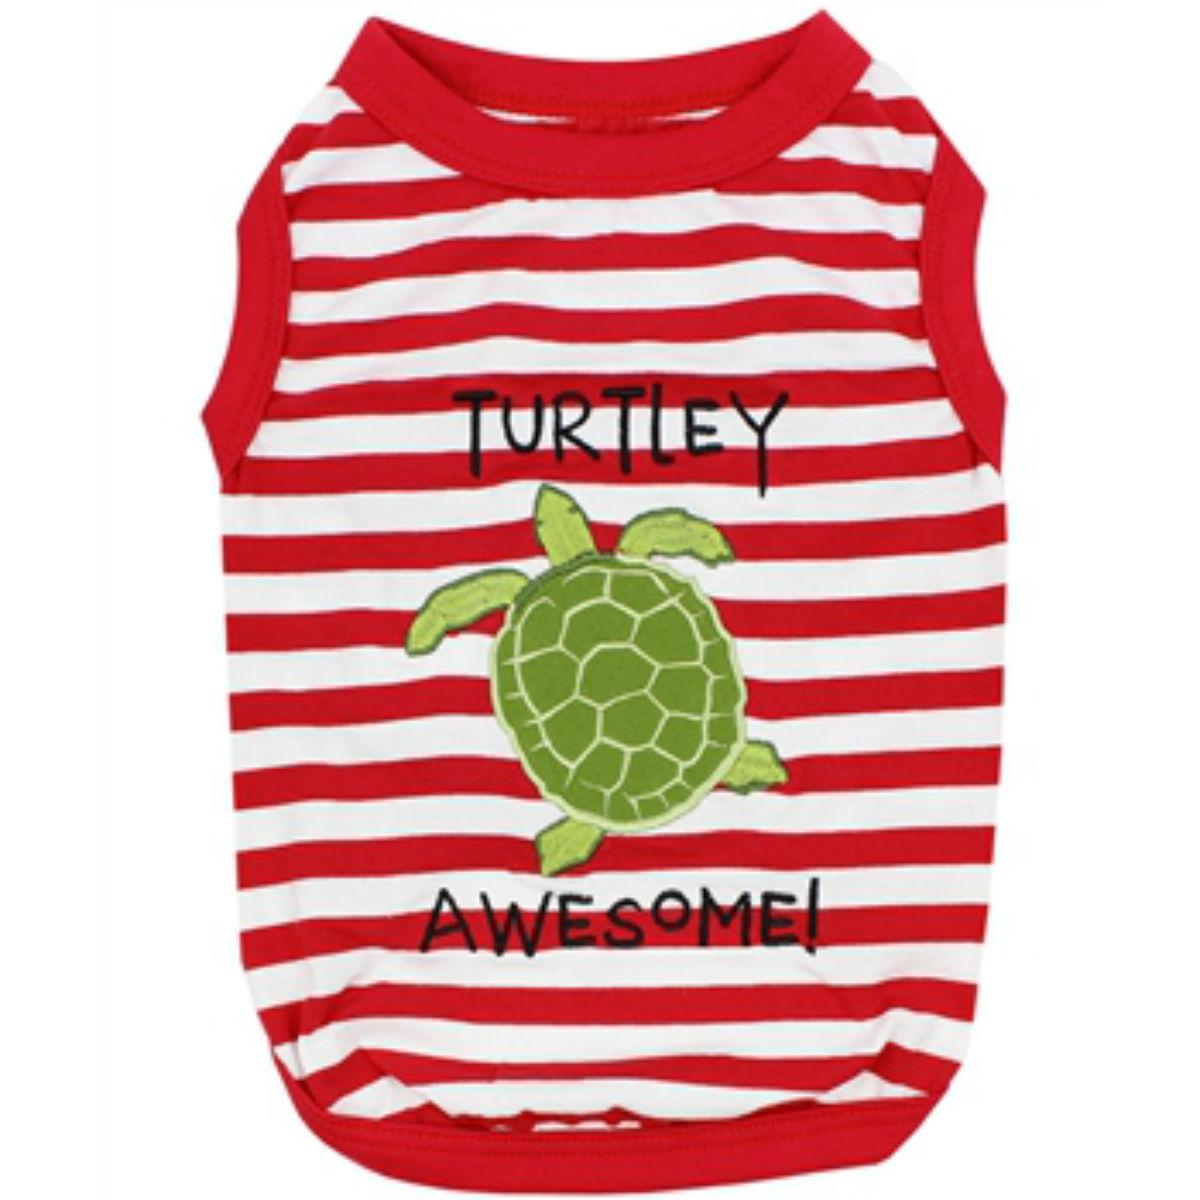 Turtley Awesome Dog Tank by Parisian Pet - Red